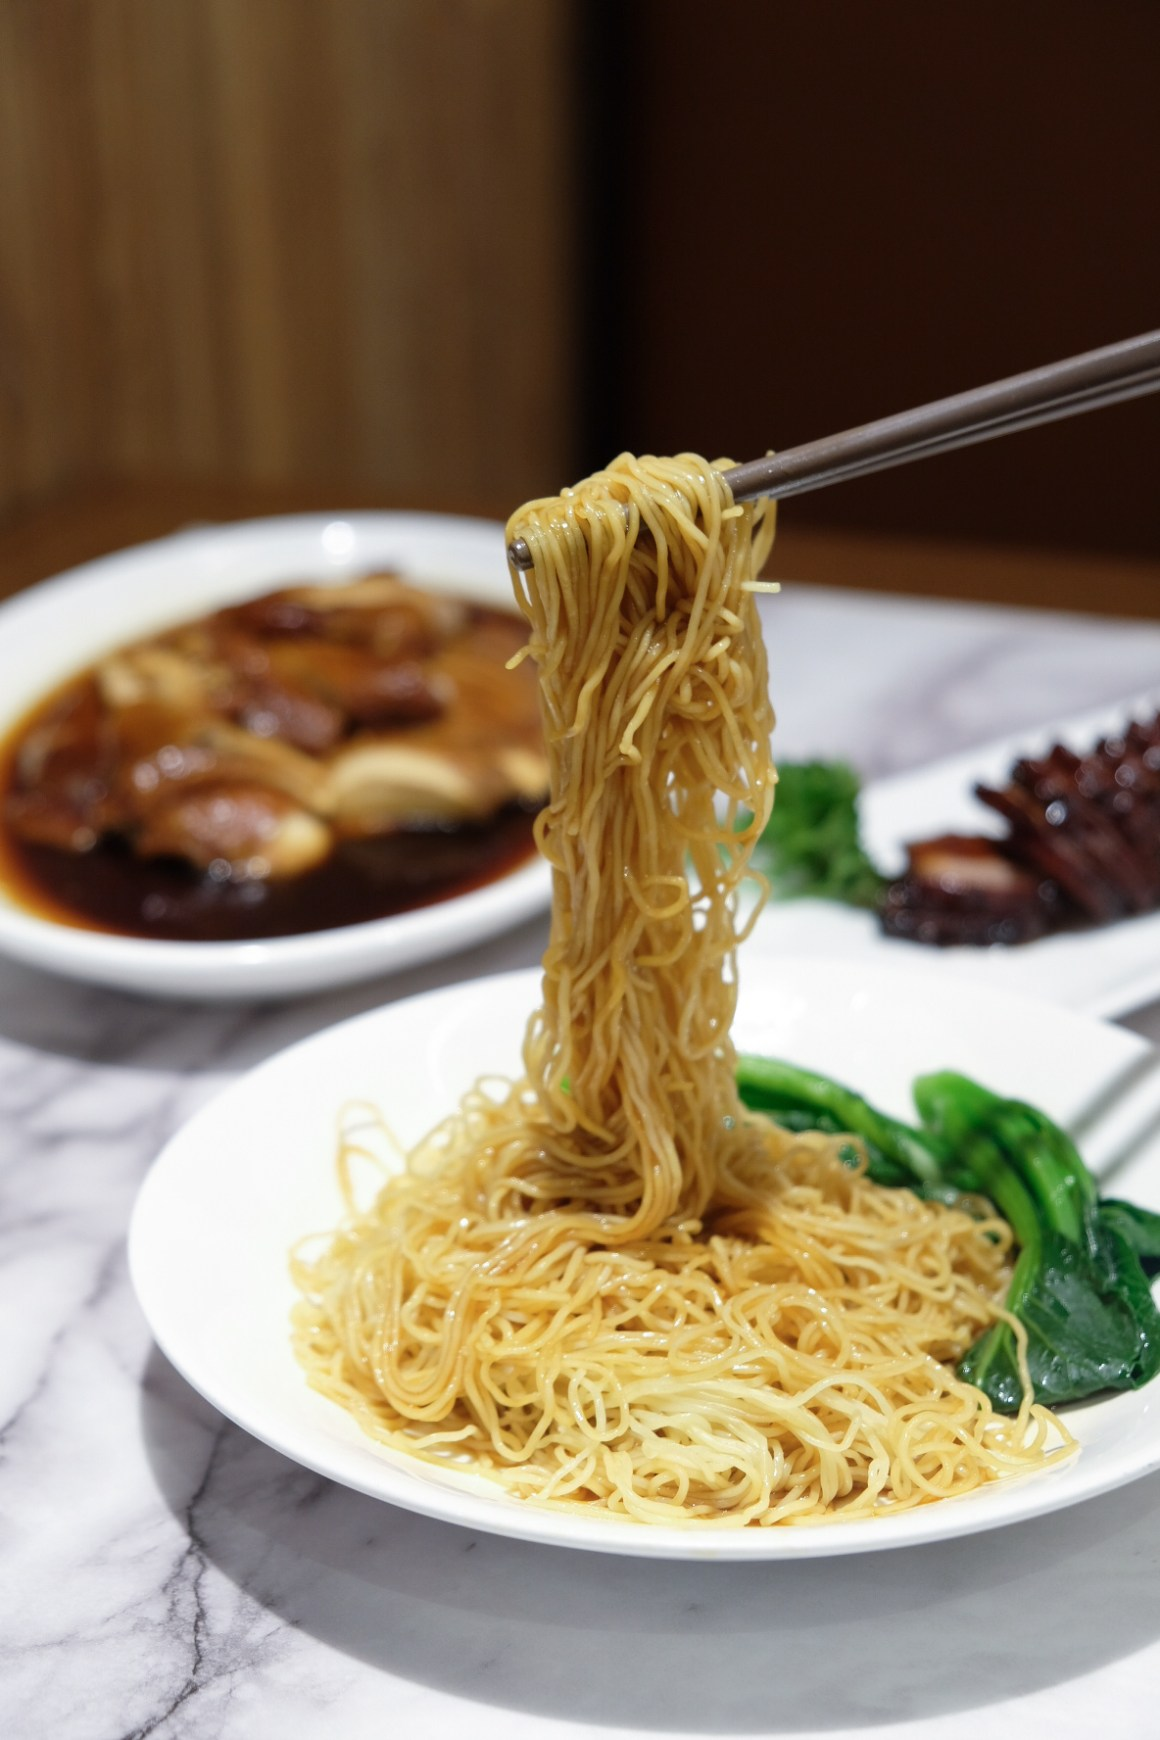 Ho Fook Hei Soy Sauce Chicken By Joyden At Great World City - Egg noodles ($3.80)